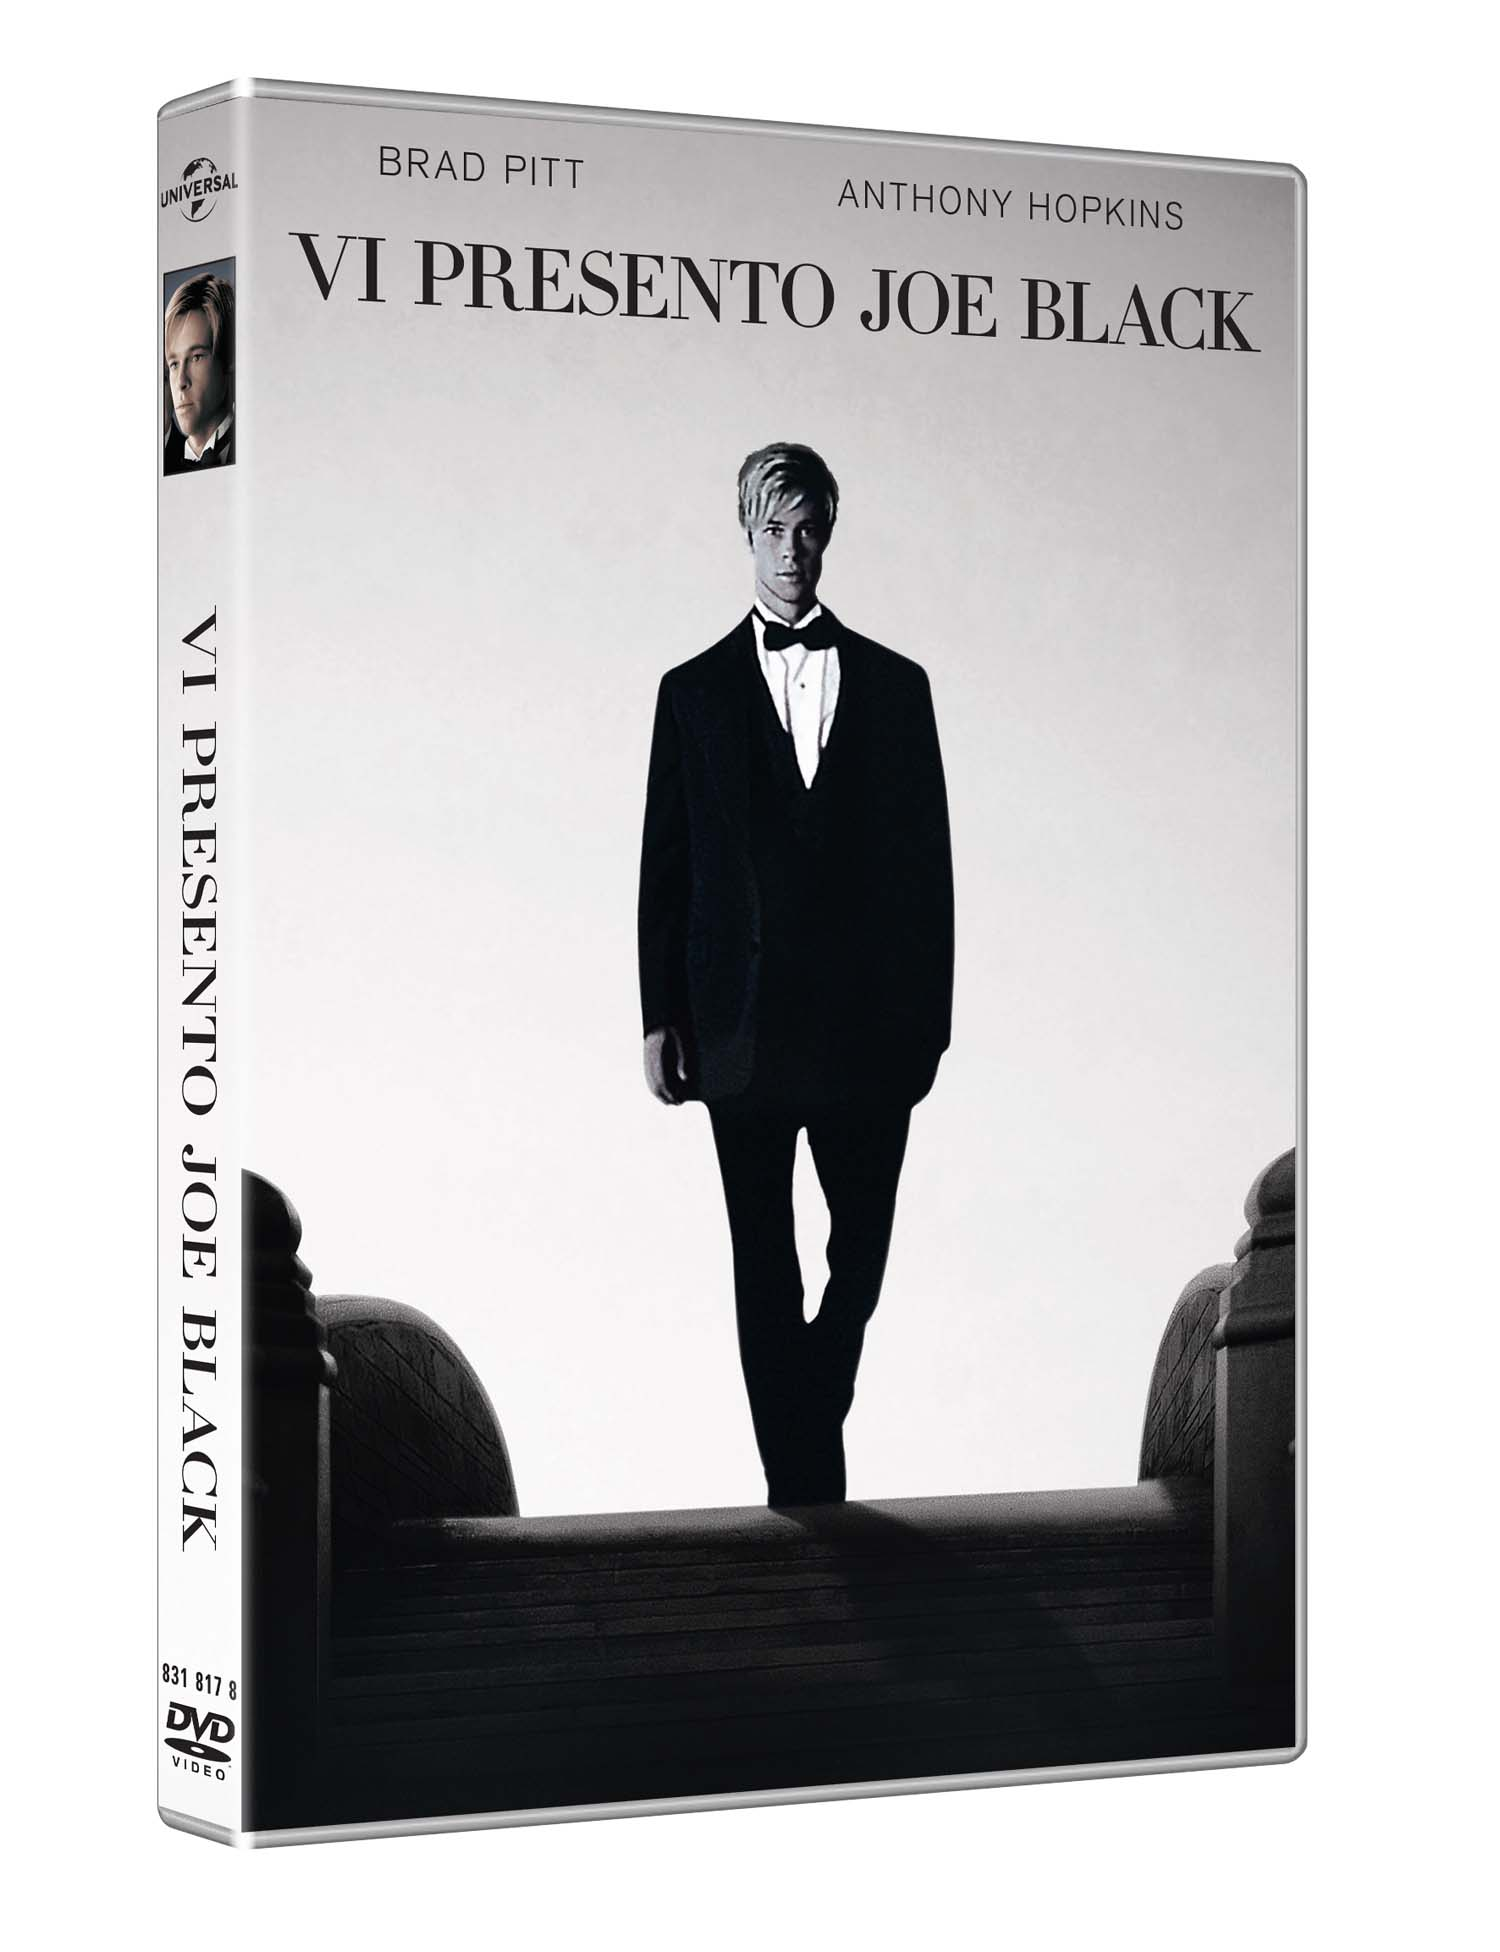 VI PRESENTO JOE BLACK (SAN VALENTINO COLLECTION) (DVD)